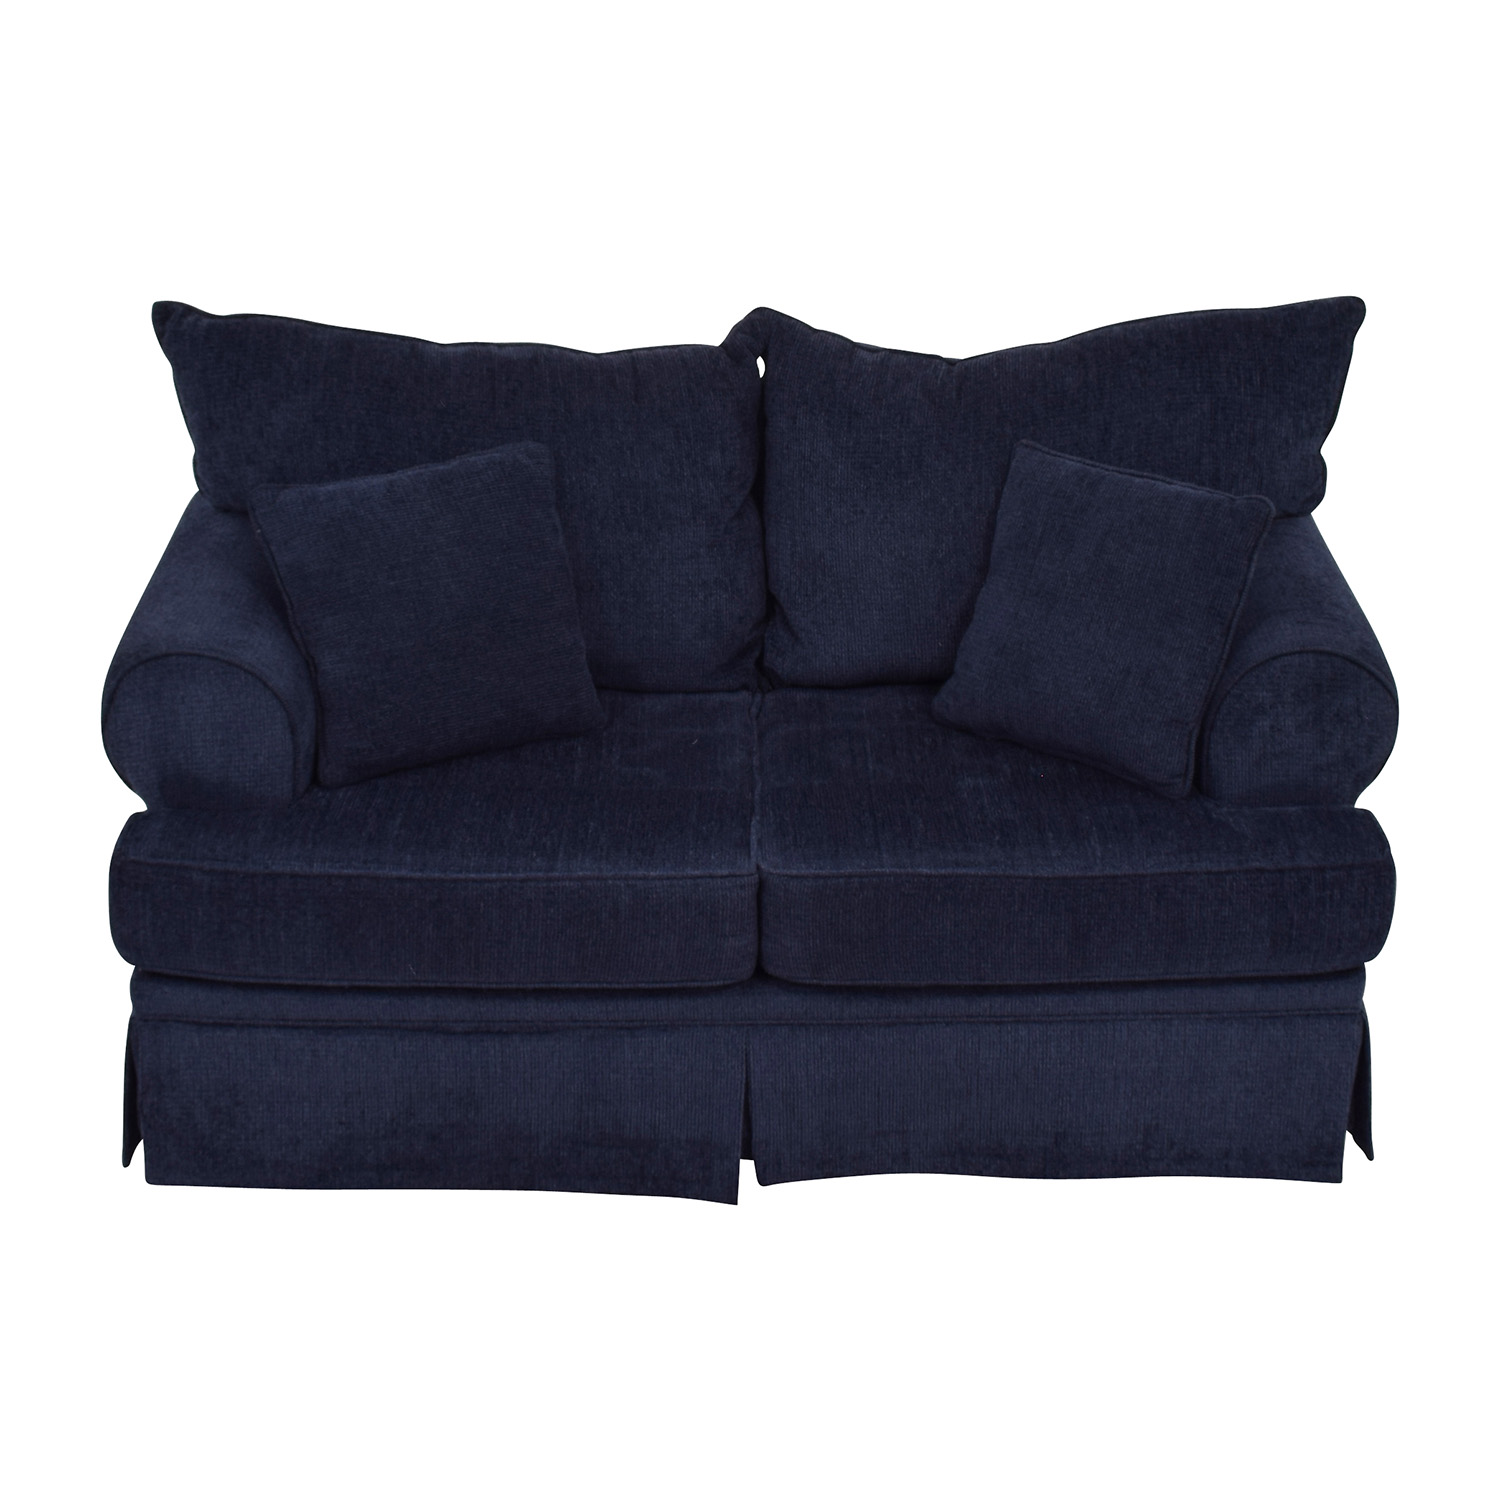 Bobs Furniture Bobs Furniture Deep Blue Loveseat price